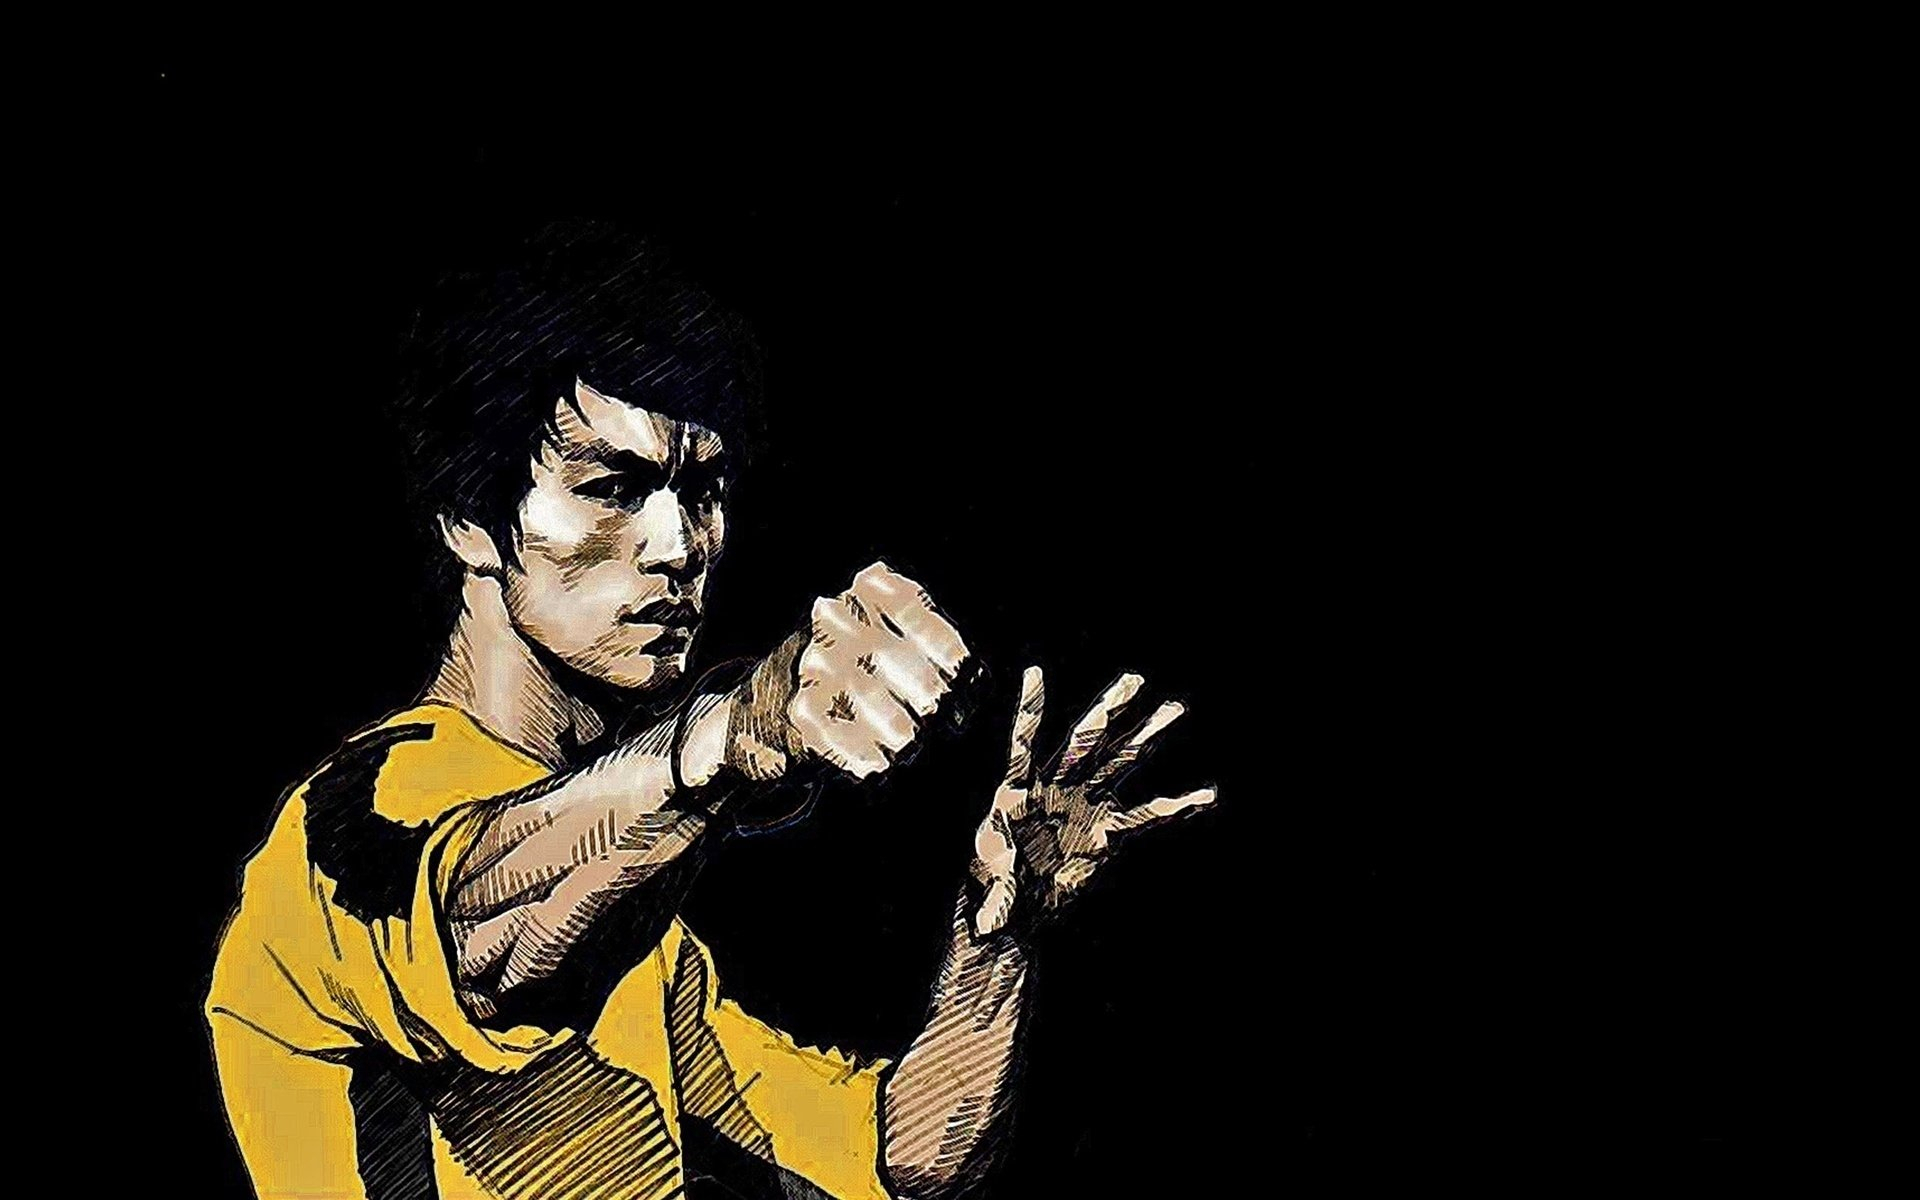 49 bruce lee hd wallpapers | background images - wallpaper abyss